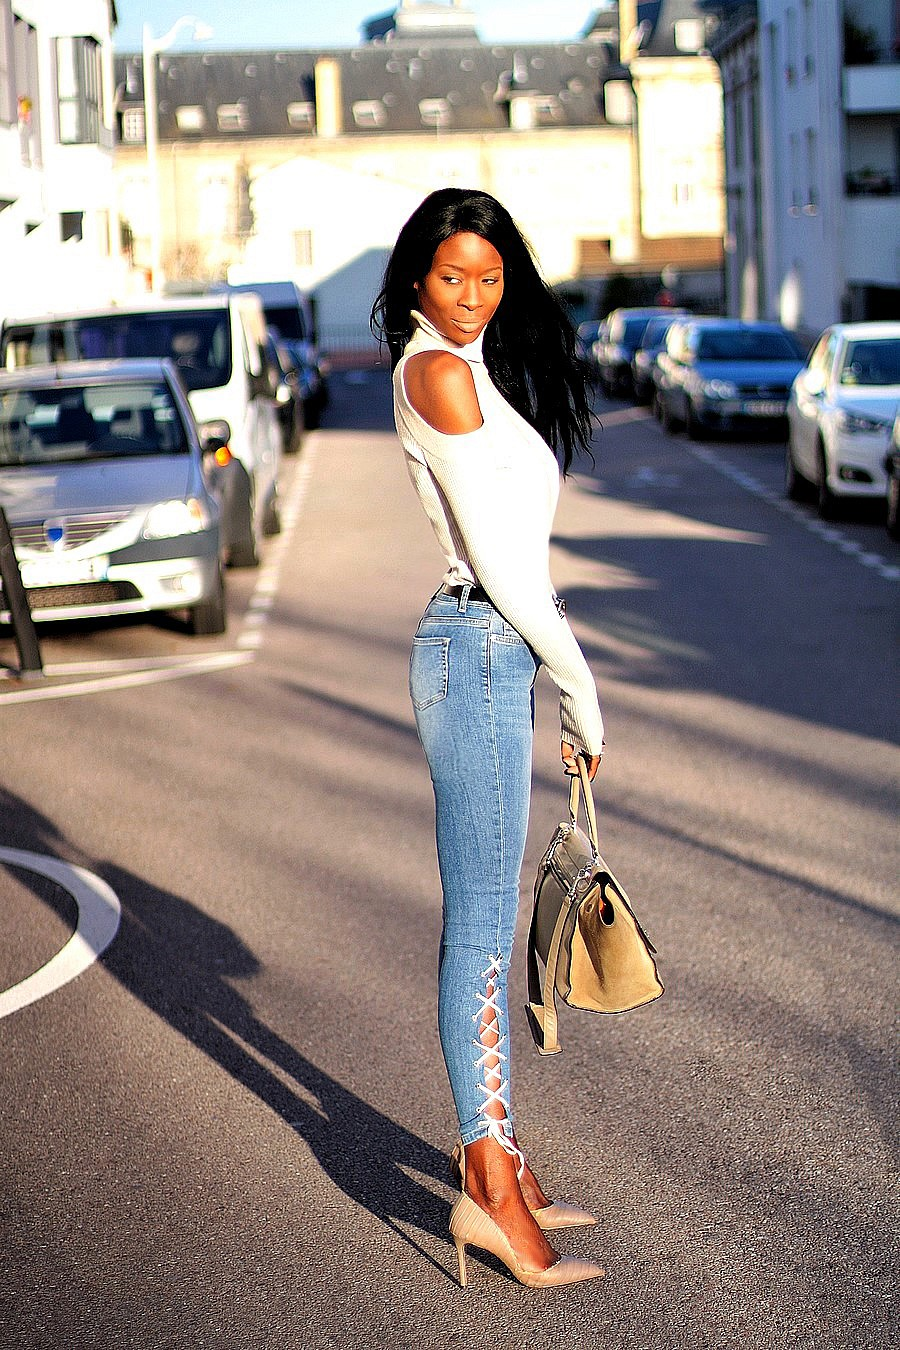 jeans-lacets-missguided-pull-epaules-nues-blog-mode